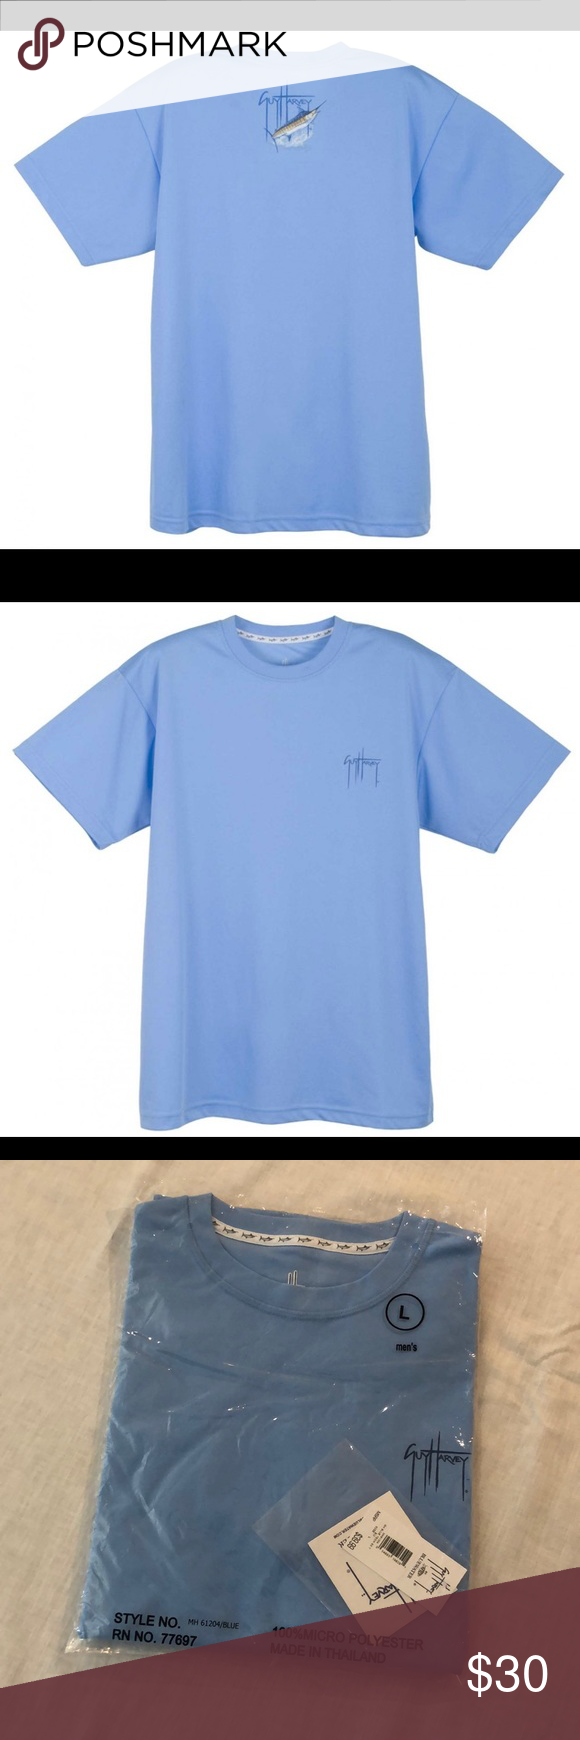 2d6116fc Guy Harvey Blue Tech Shirt GH Blue Tech Shirt. 100% Polyester. Excellent  quality. Light Blue in color. Comes from a smoke and pet FREE home.